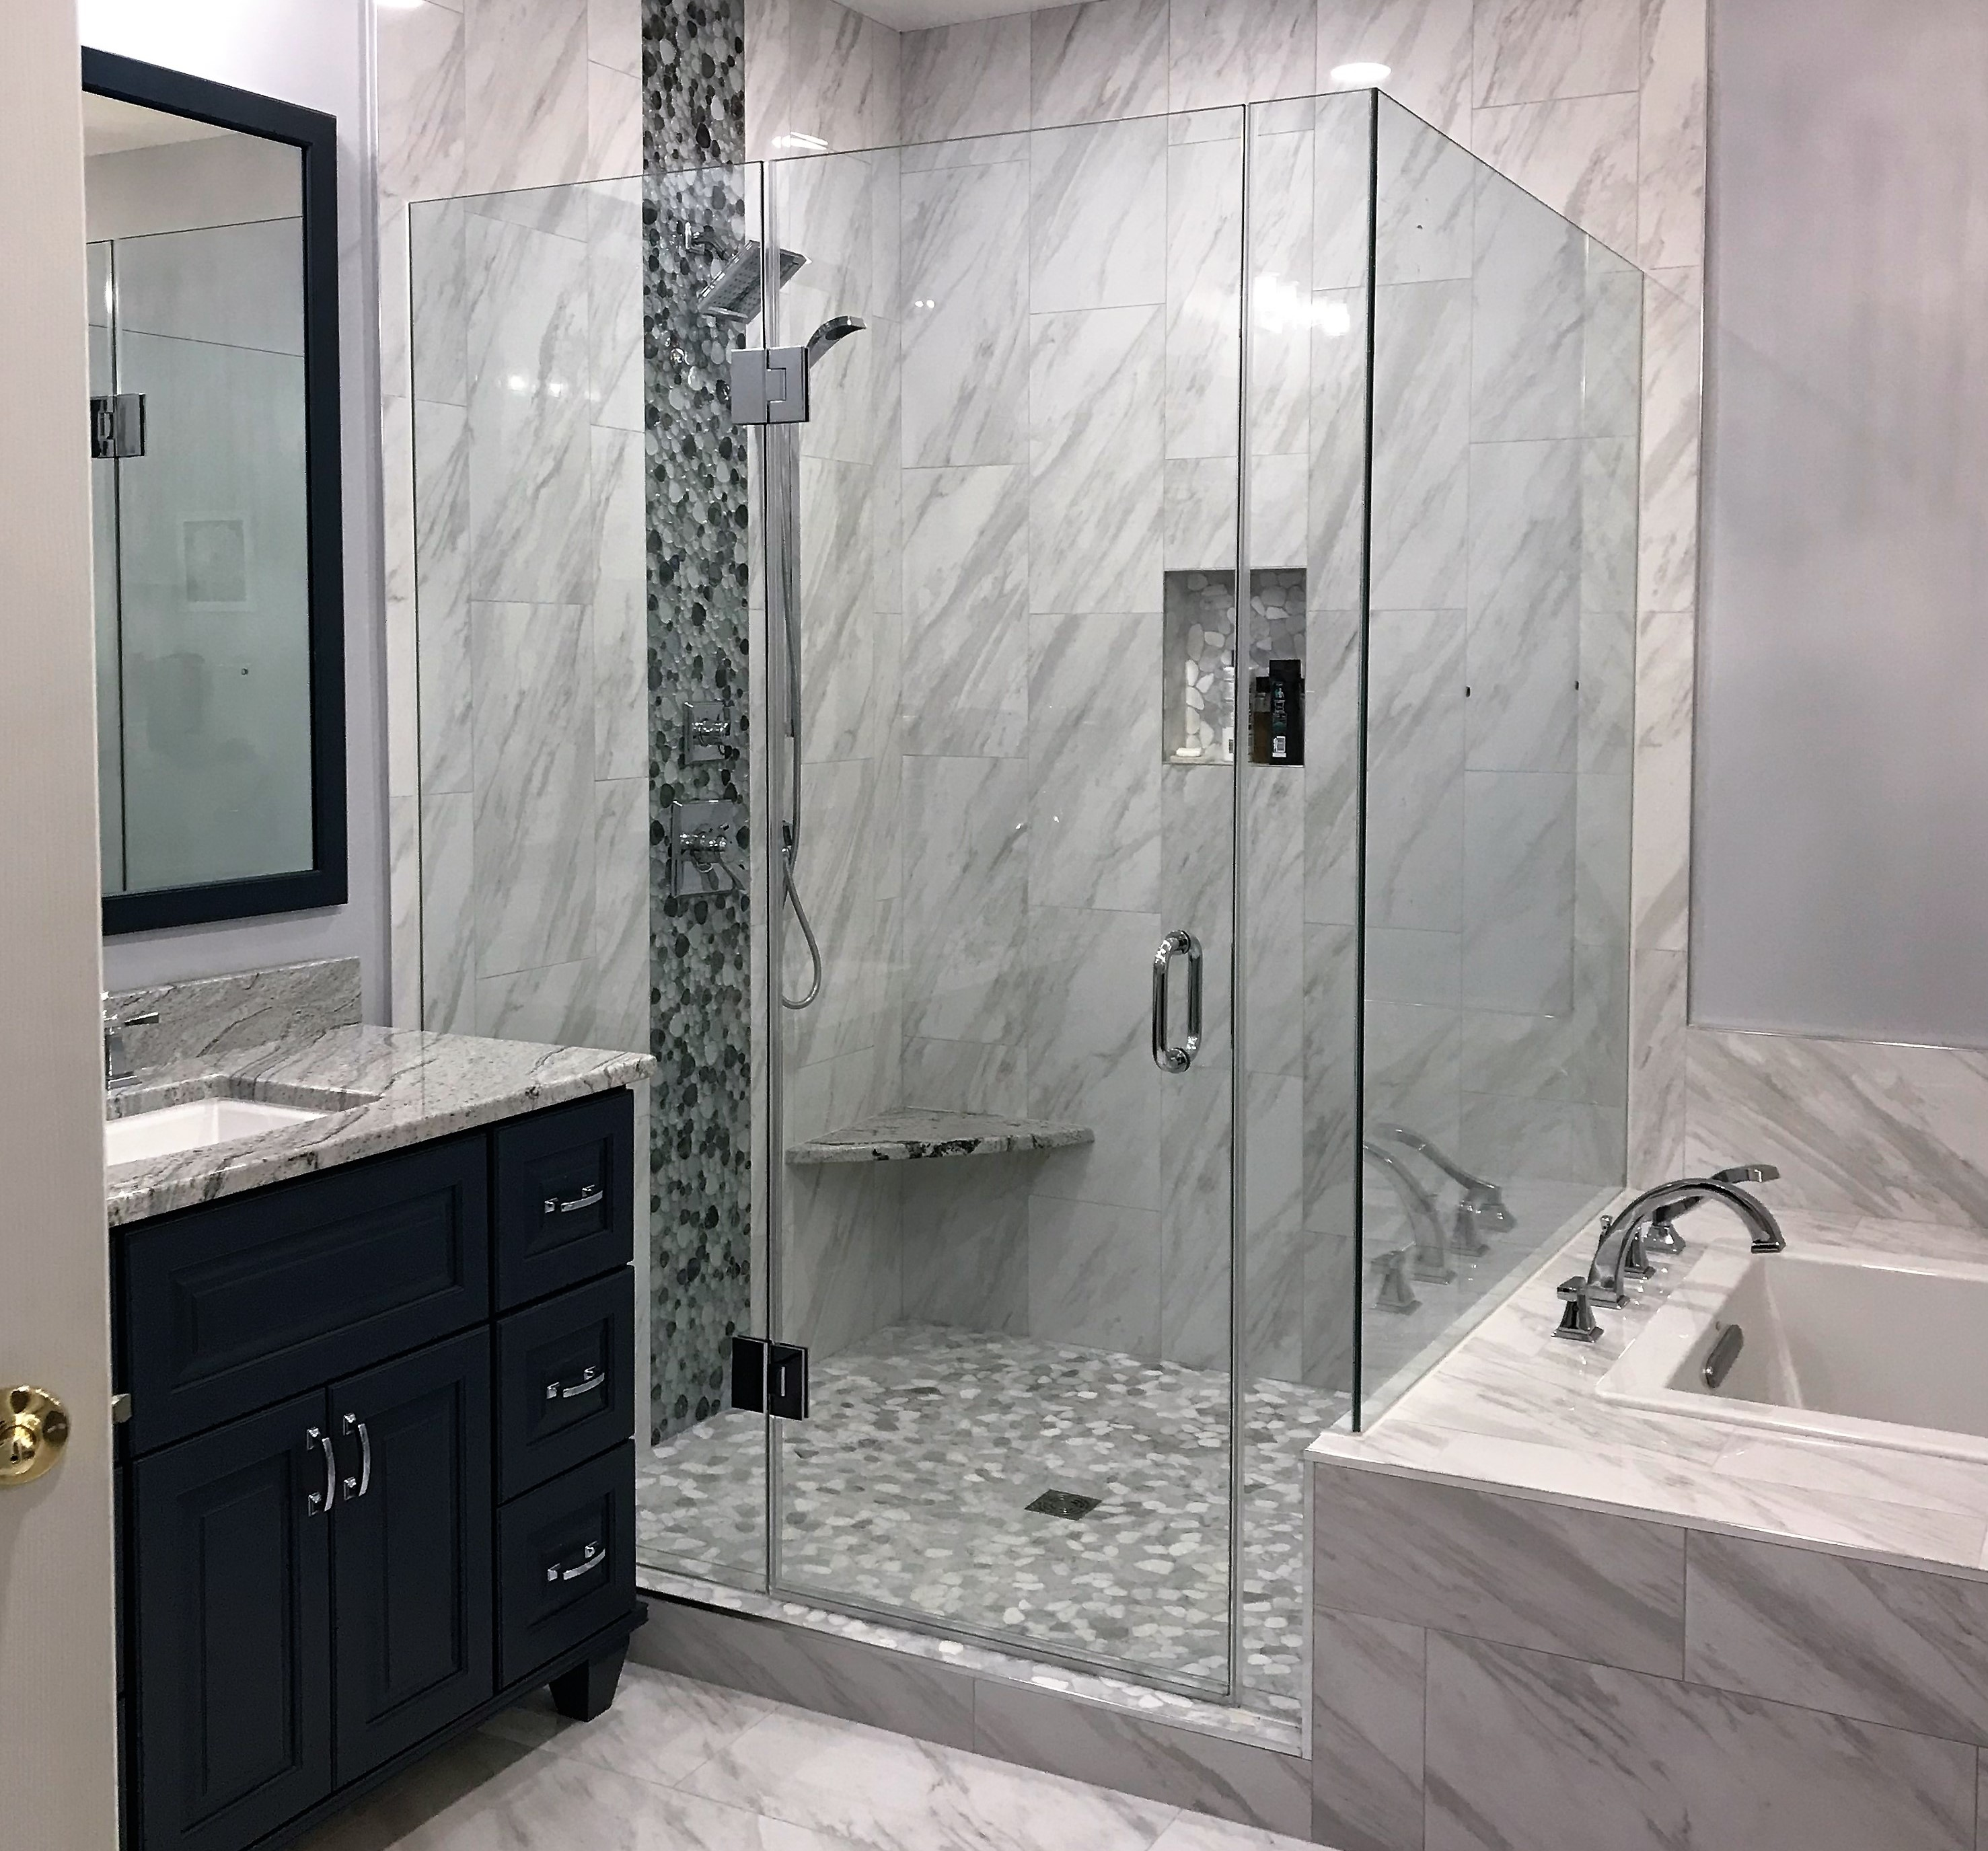 Bathroom Renovation and Repair Services in Northern Virginia